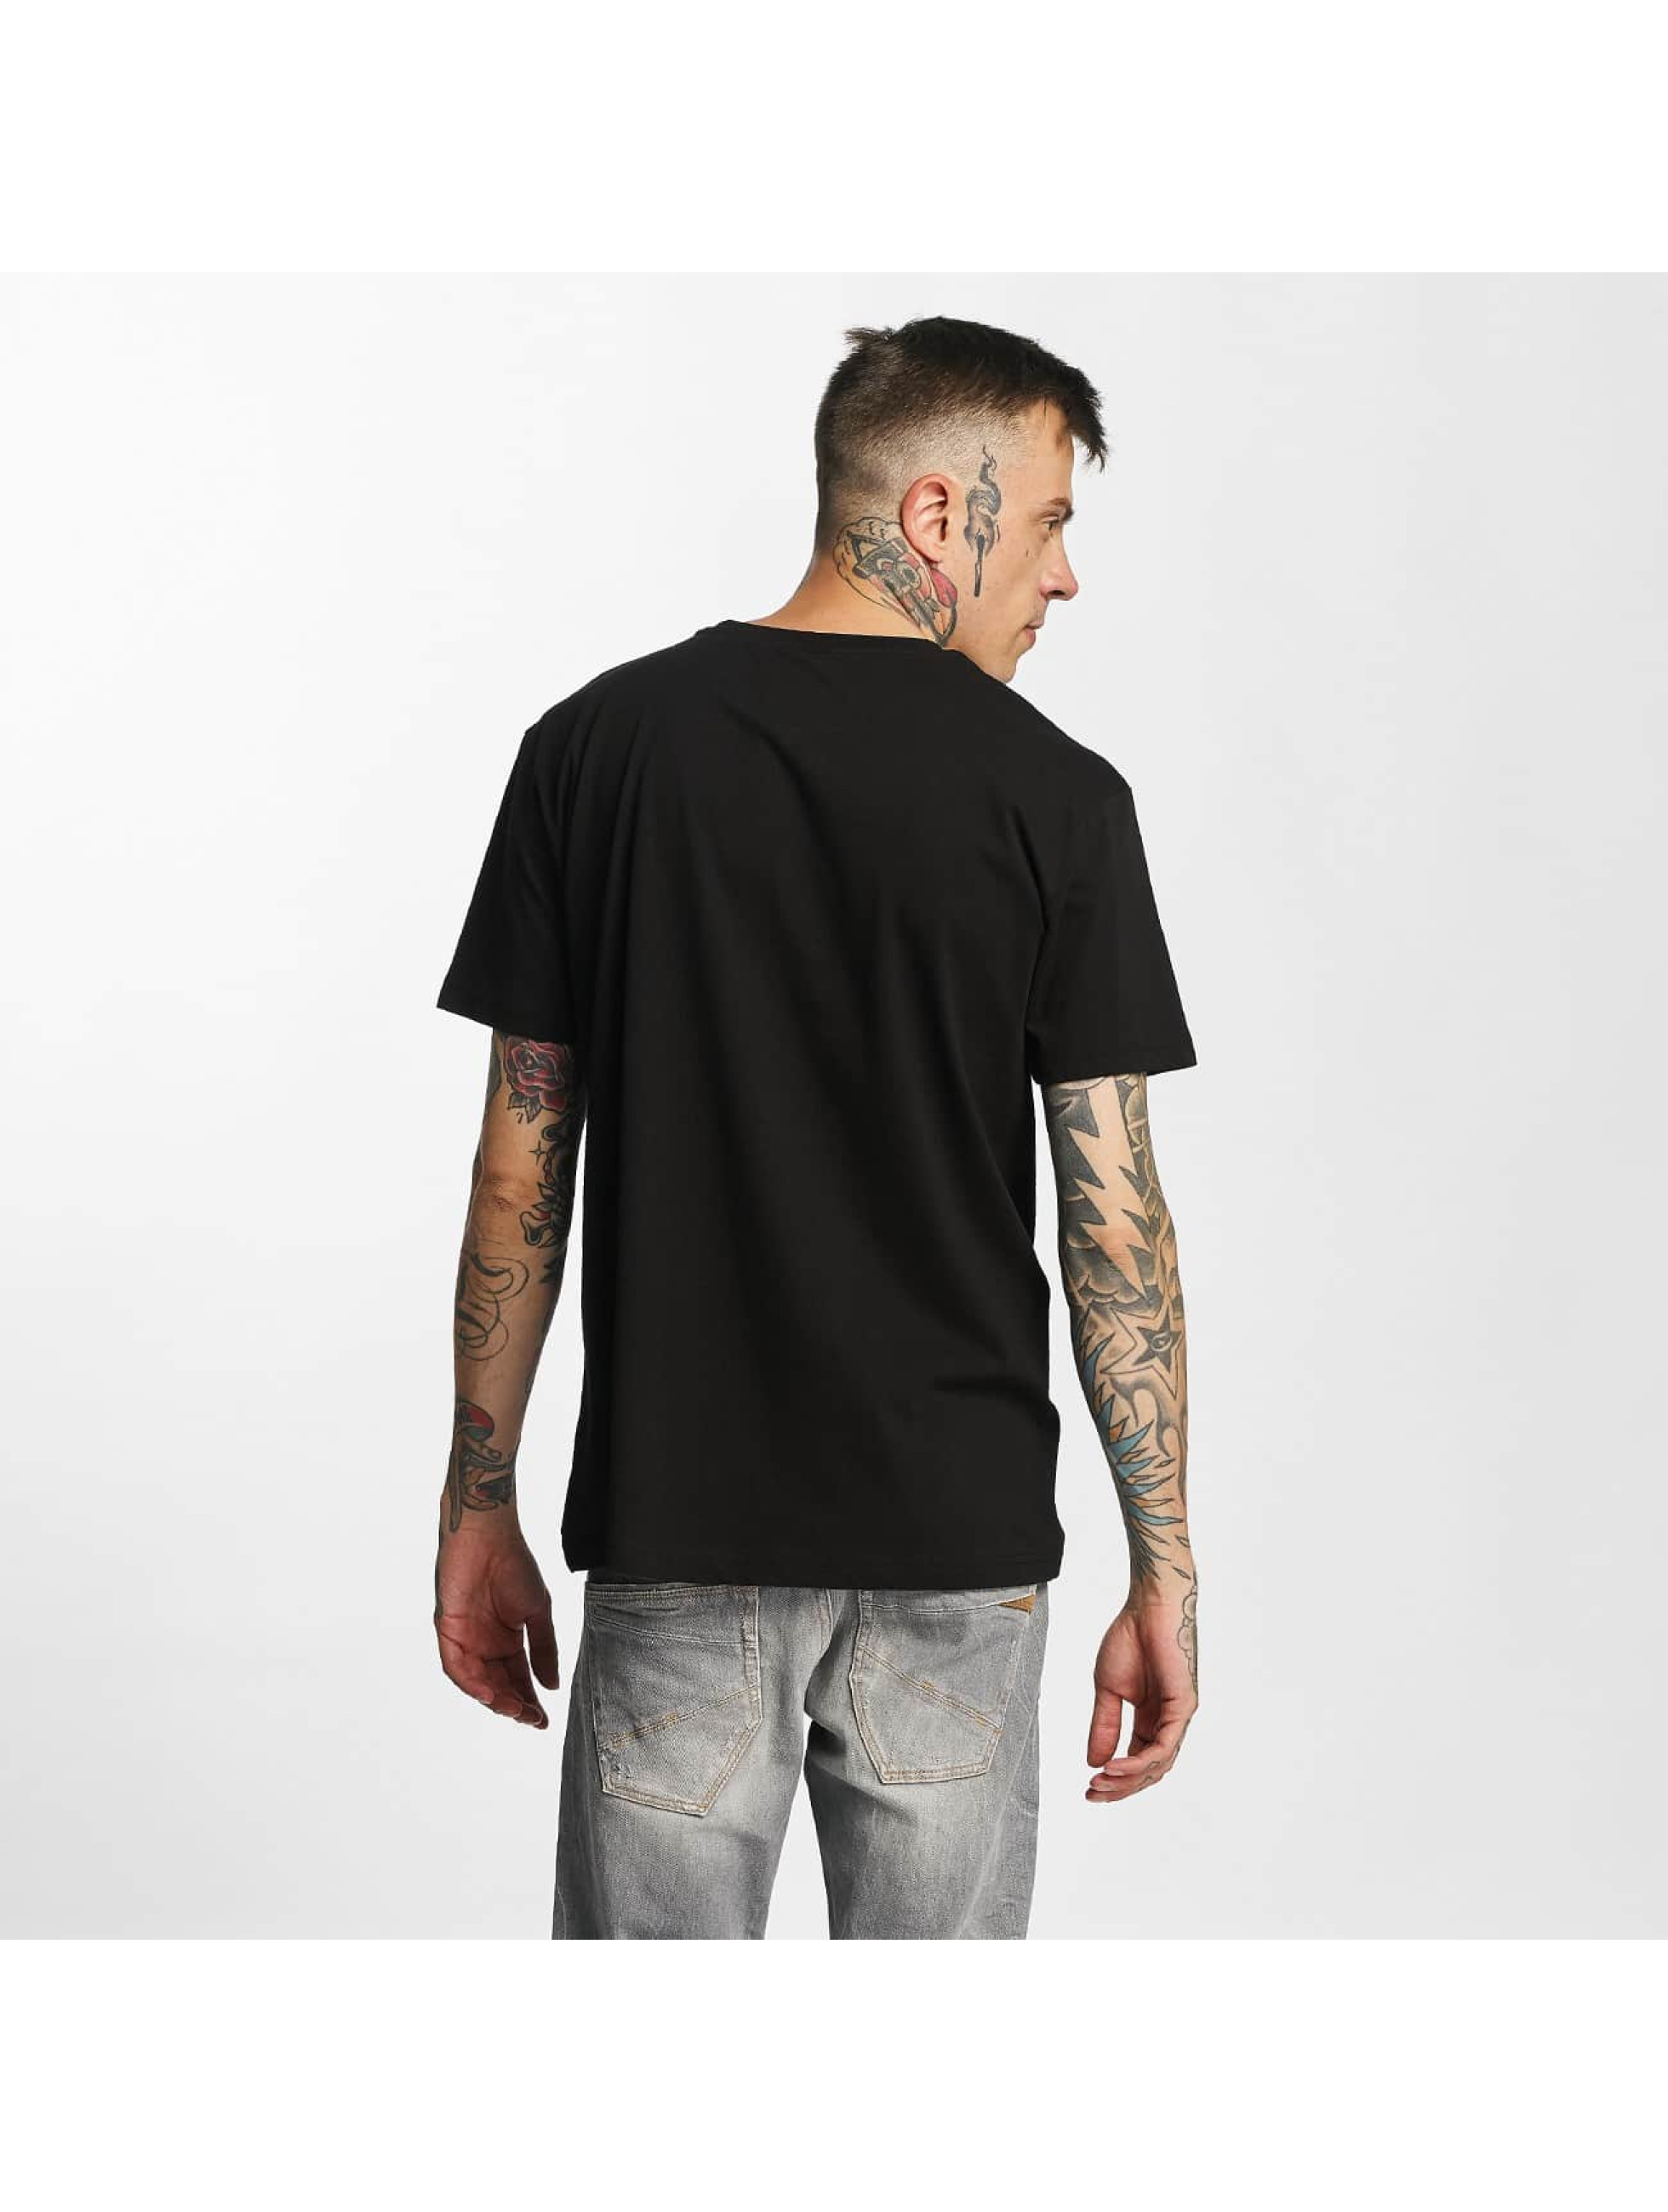 Amplified T-Shirt Tupac - In The Shadows schwarz